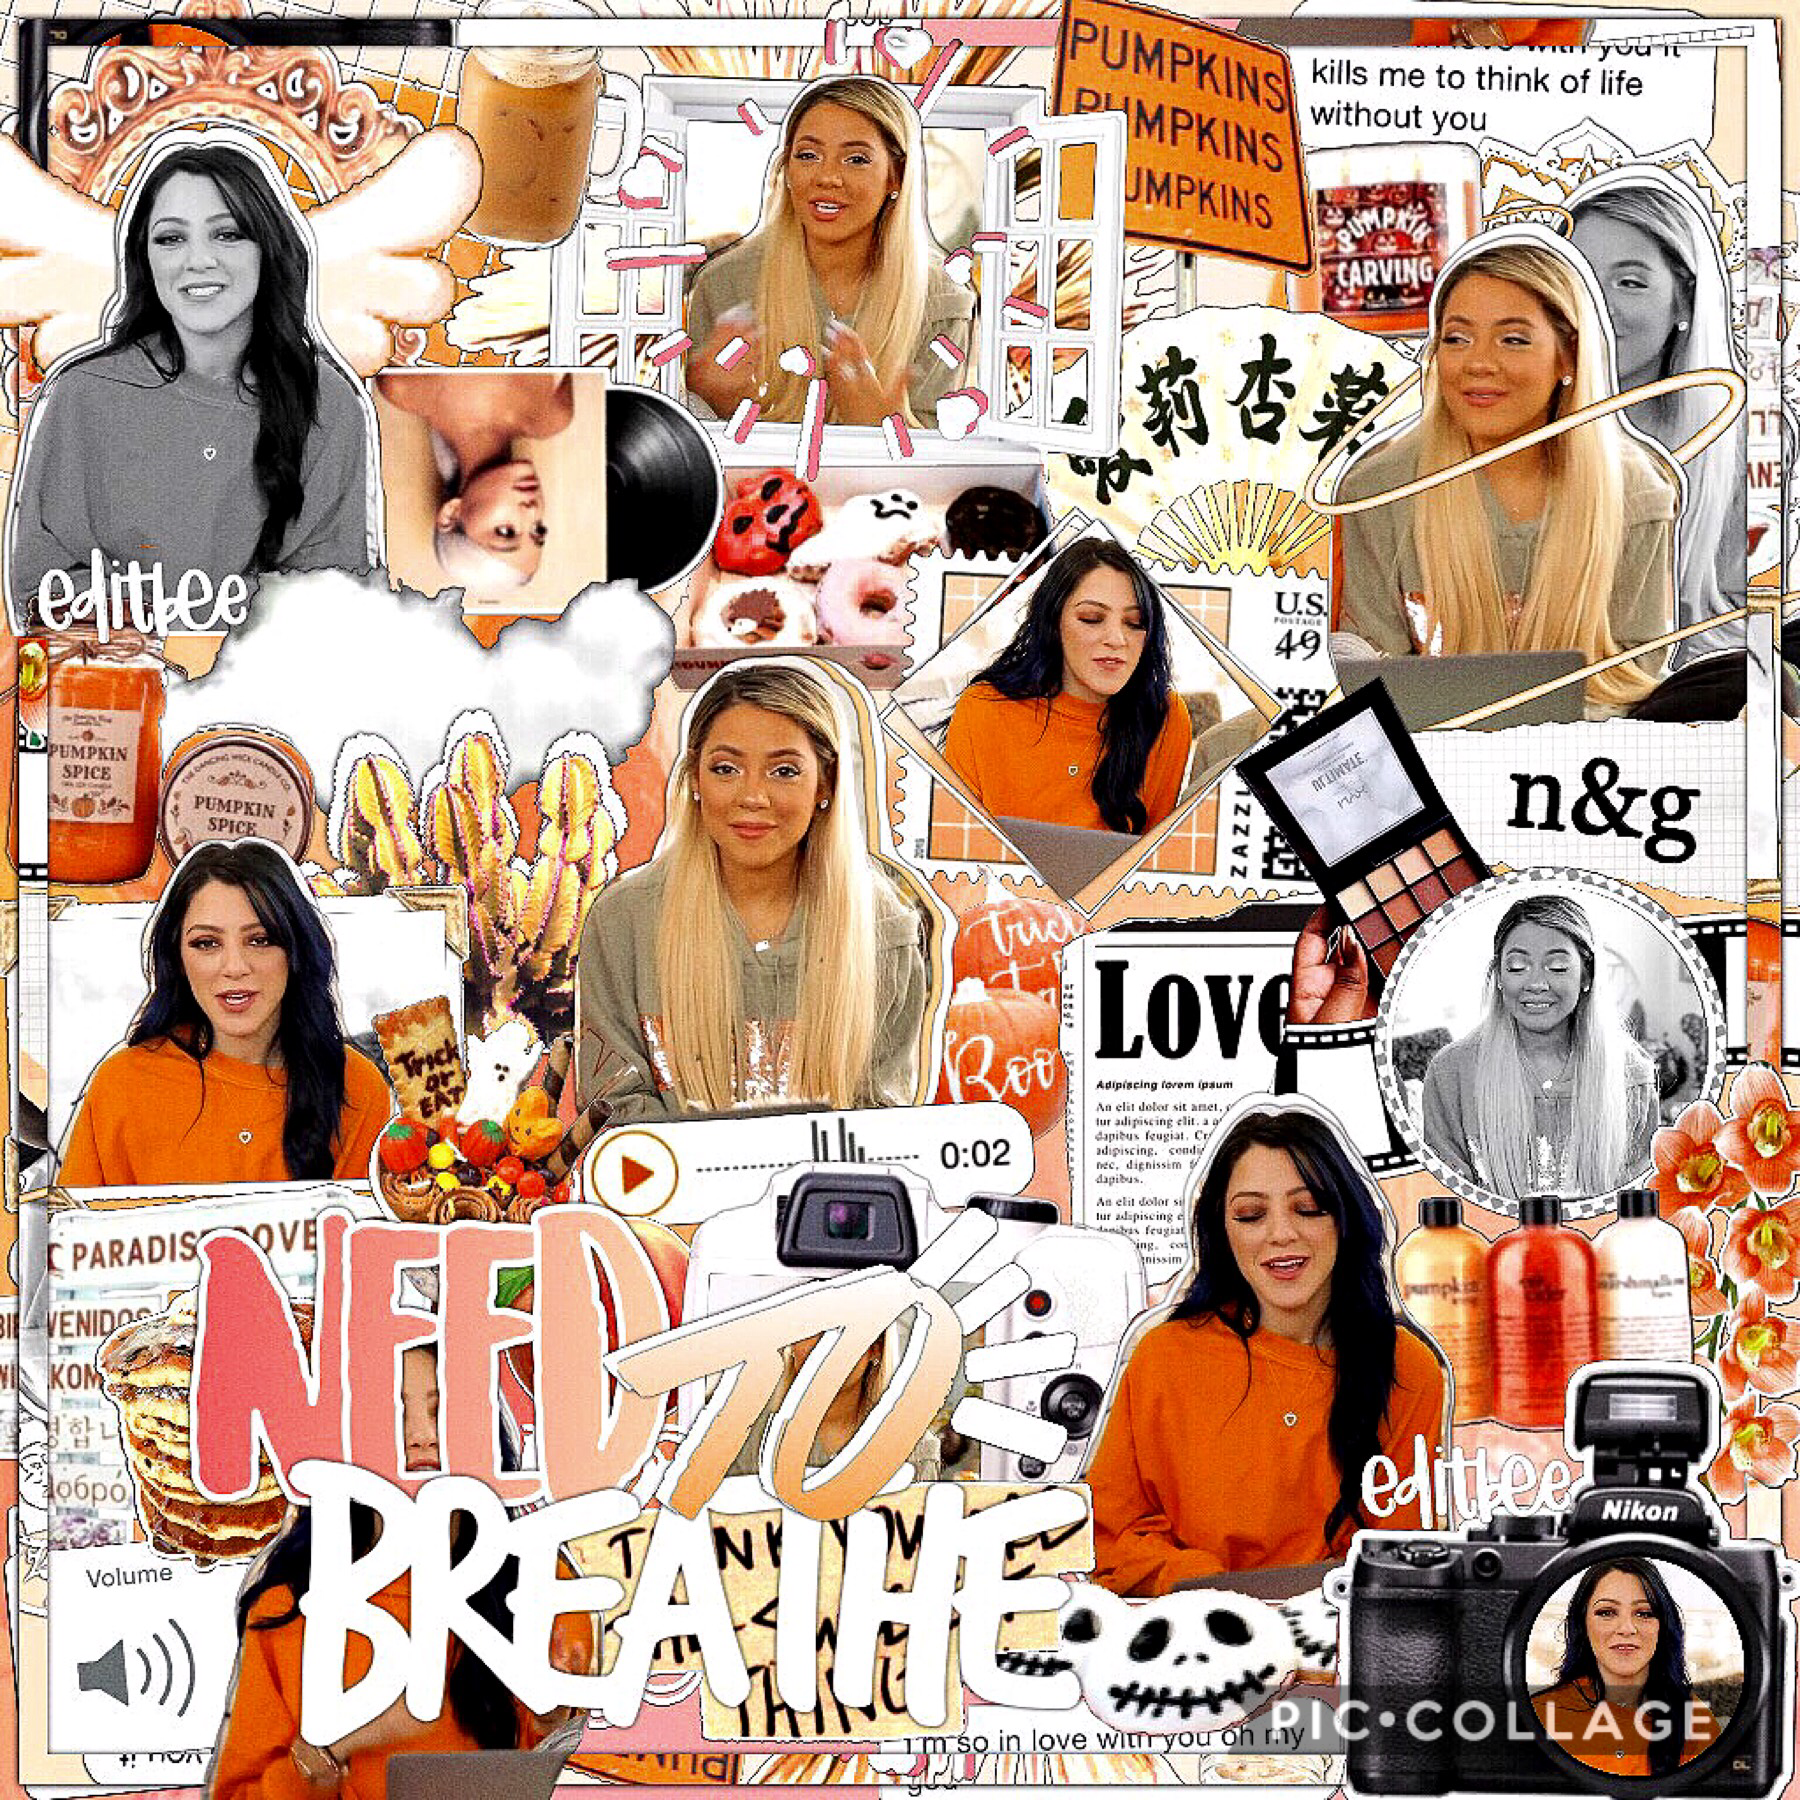 this is my last fall edit lol sorry I've been gone! I'm trying my best to stay active but I'm so busy! love you all🍁🍂